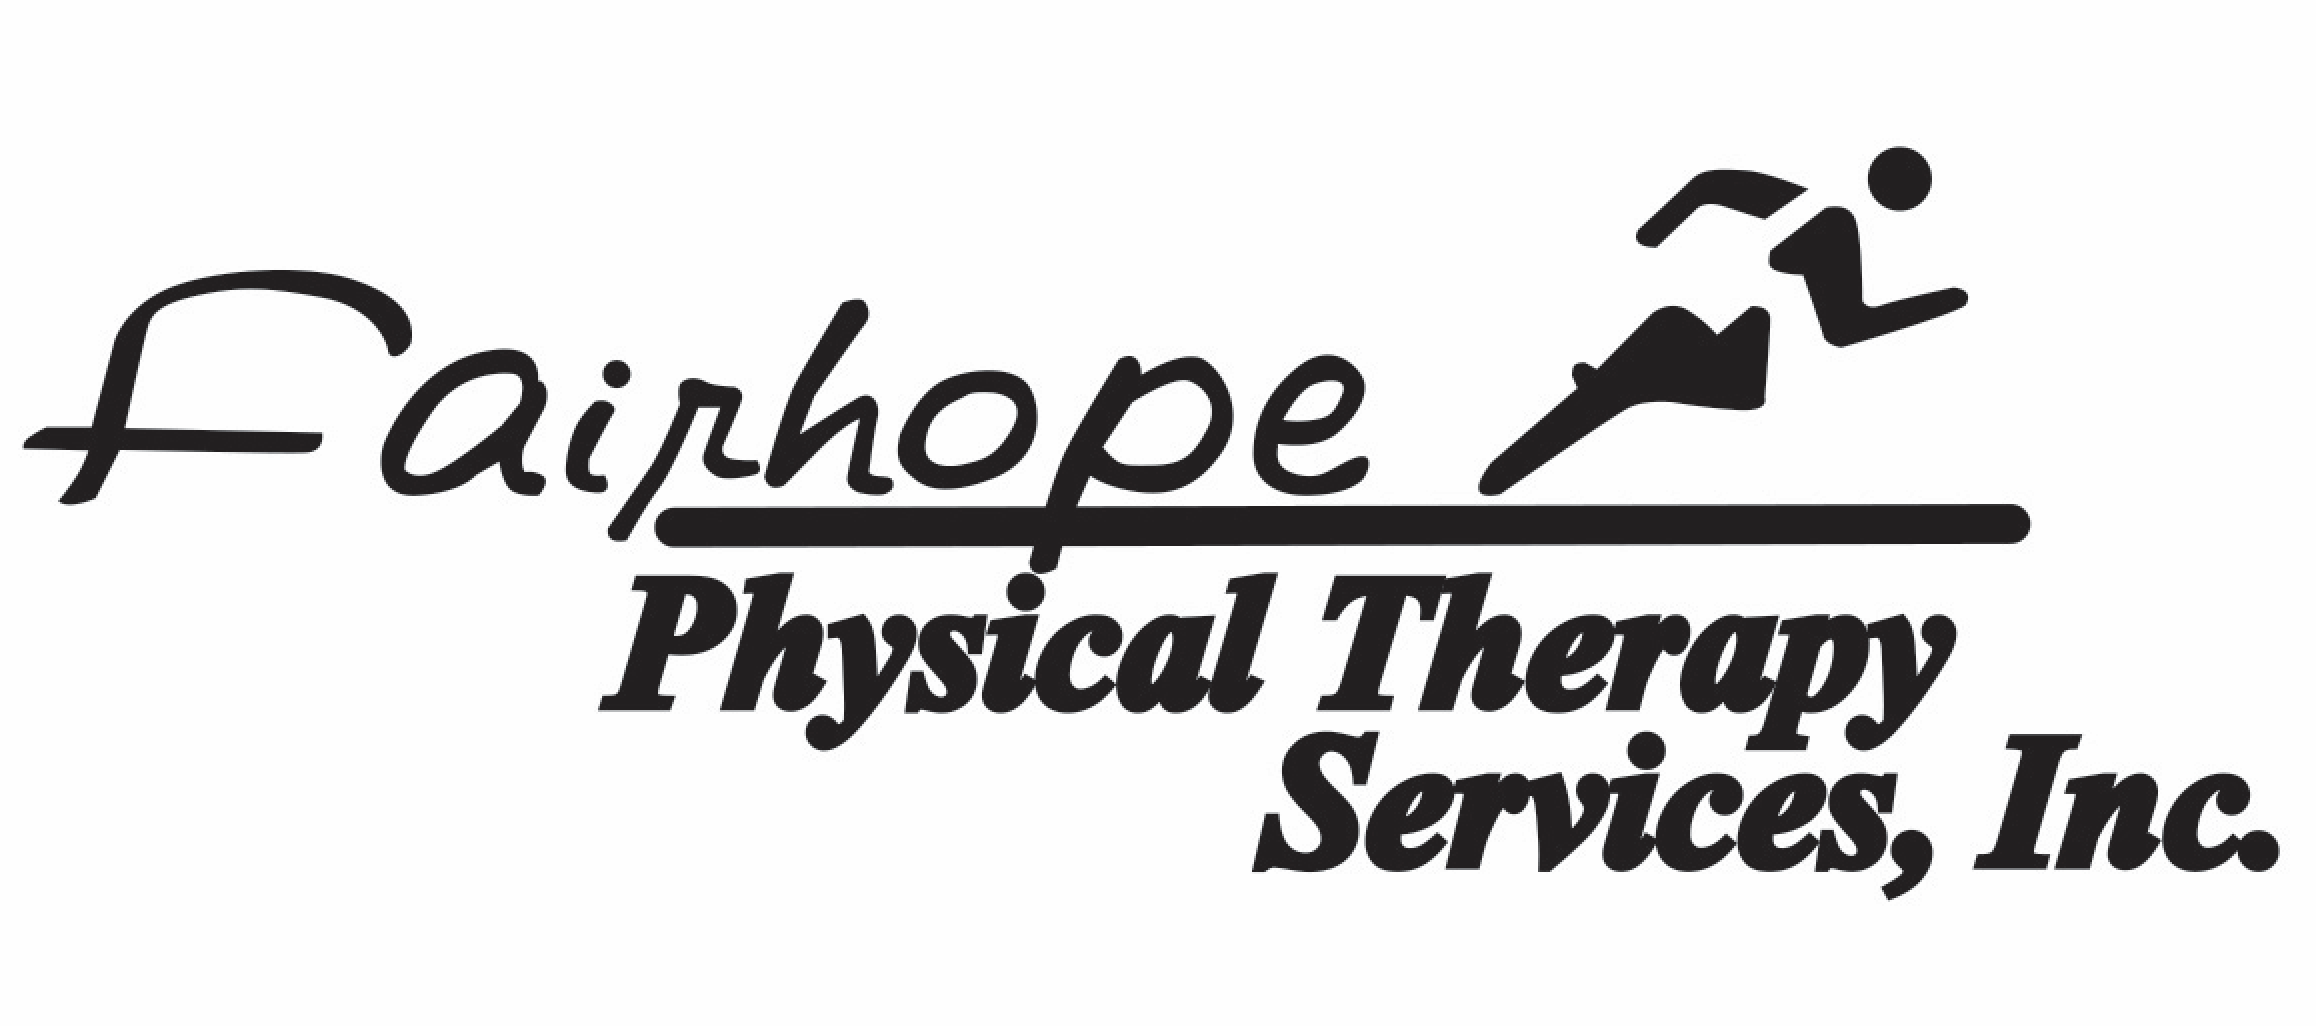 Fairhope Physical Therapy.png